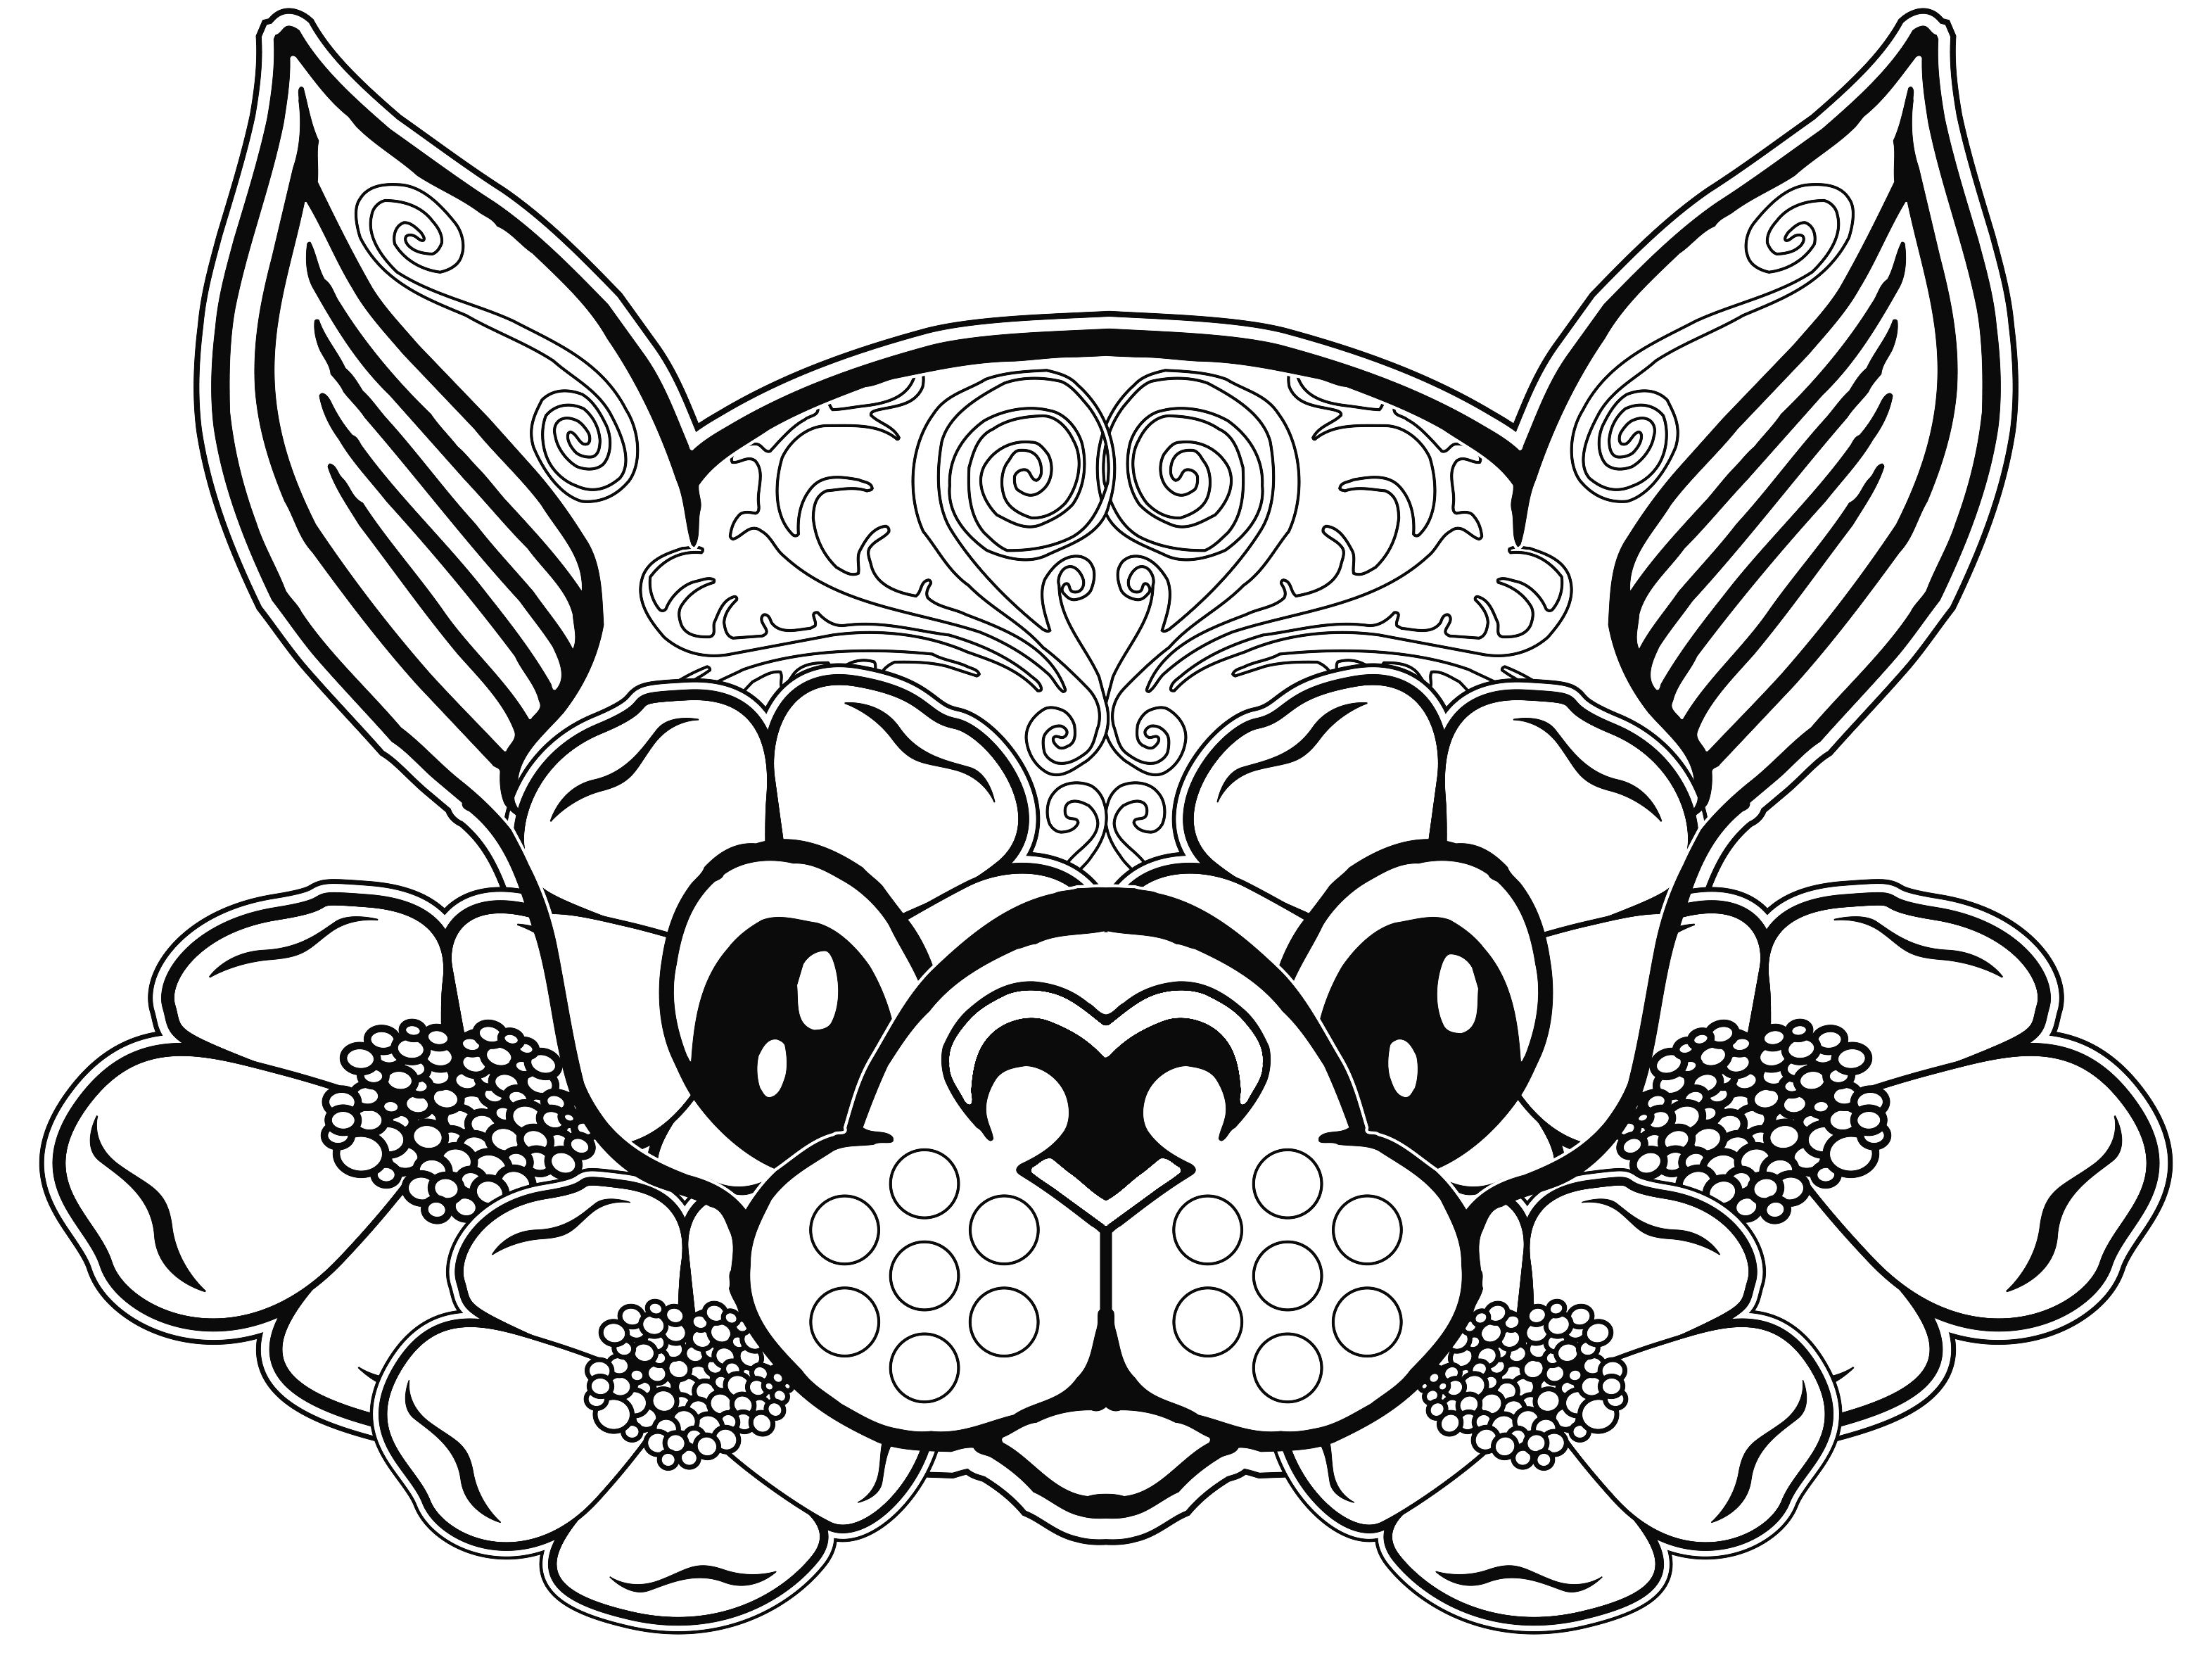 free printable dog coloring pages for adults | dog coloring page, dog coloring pages, free coloring page ...